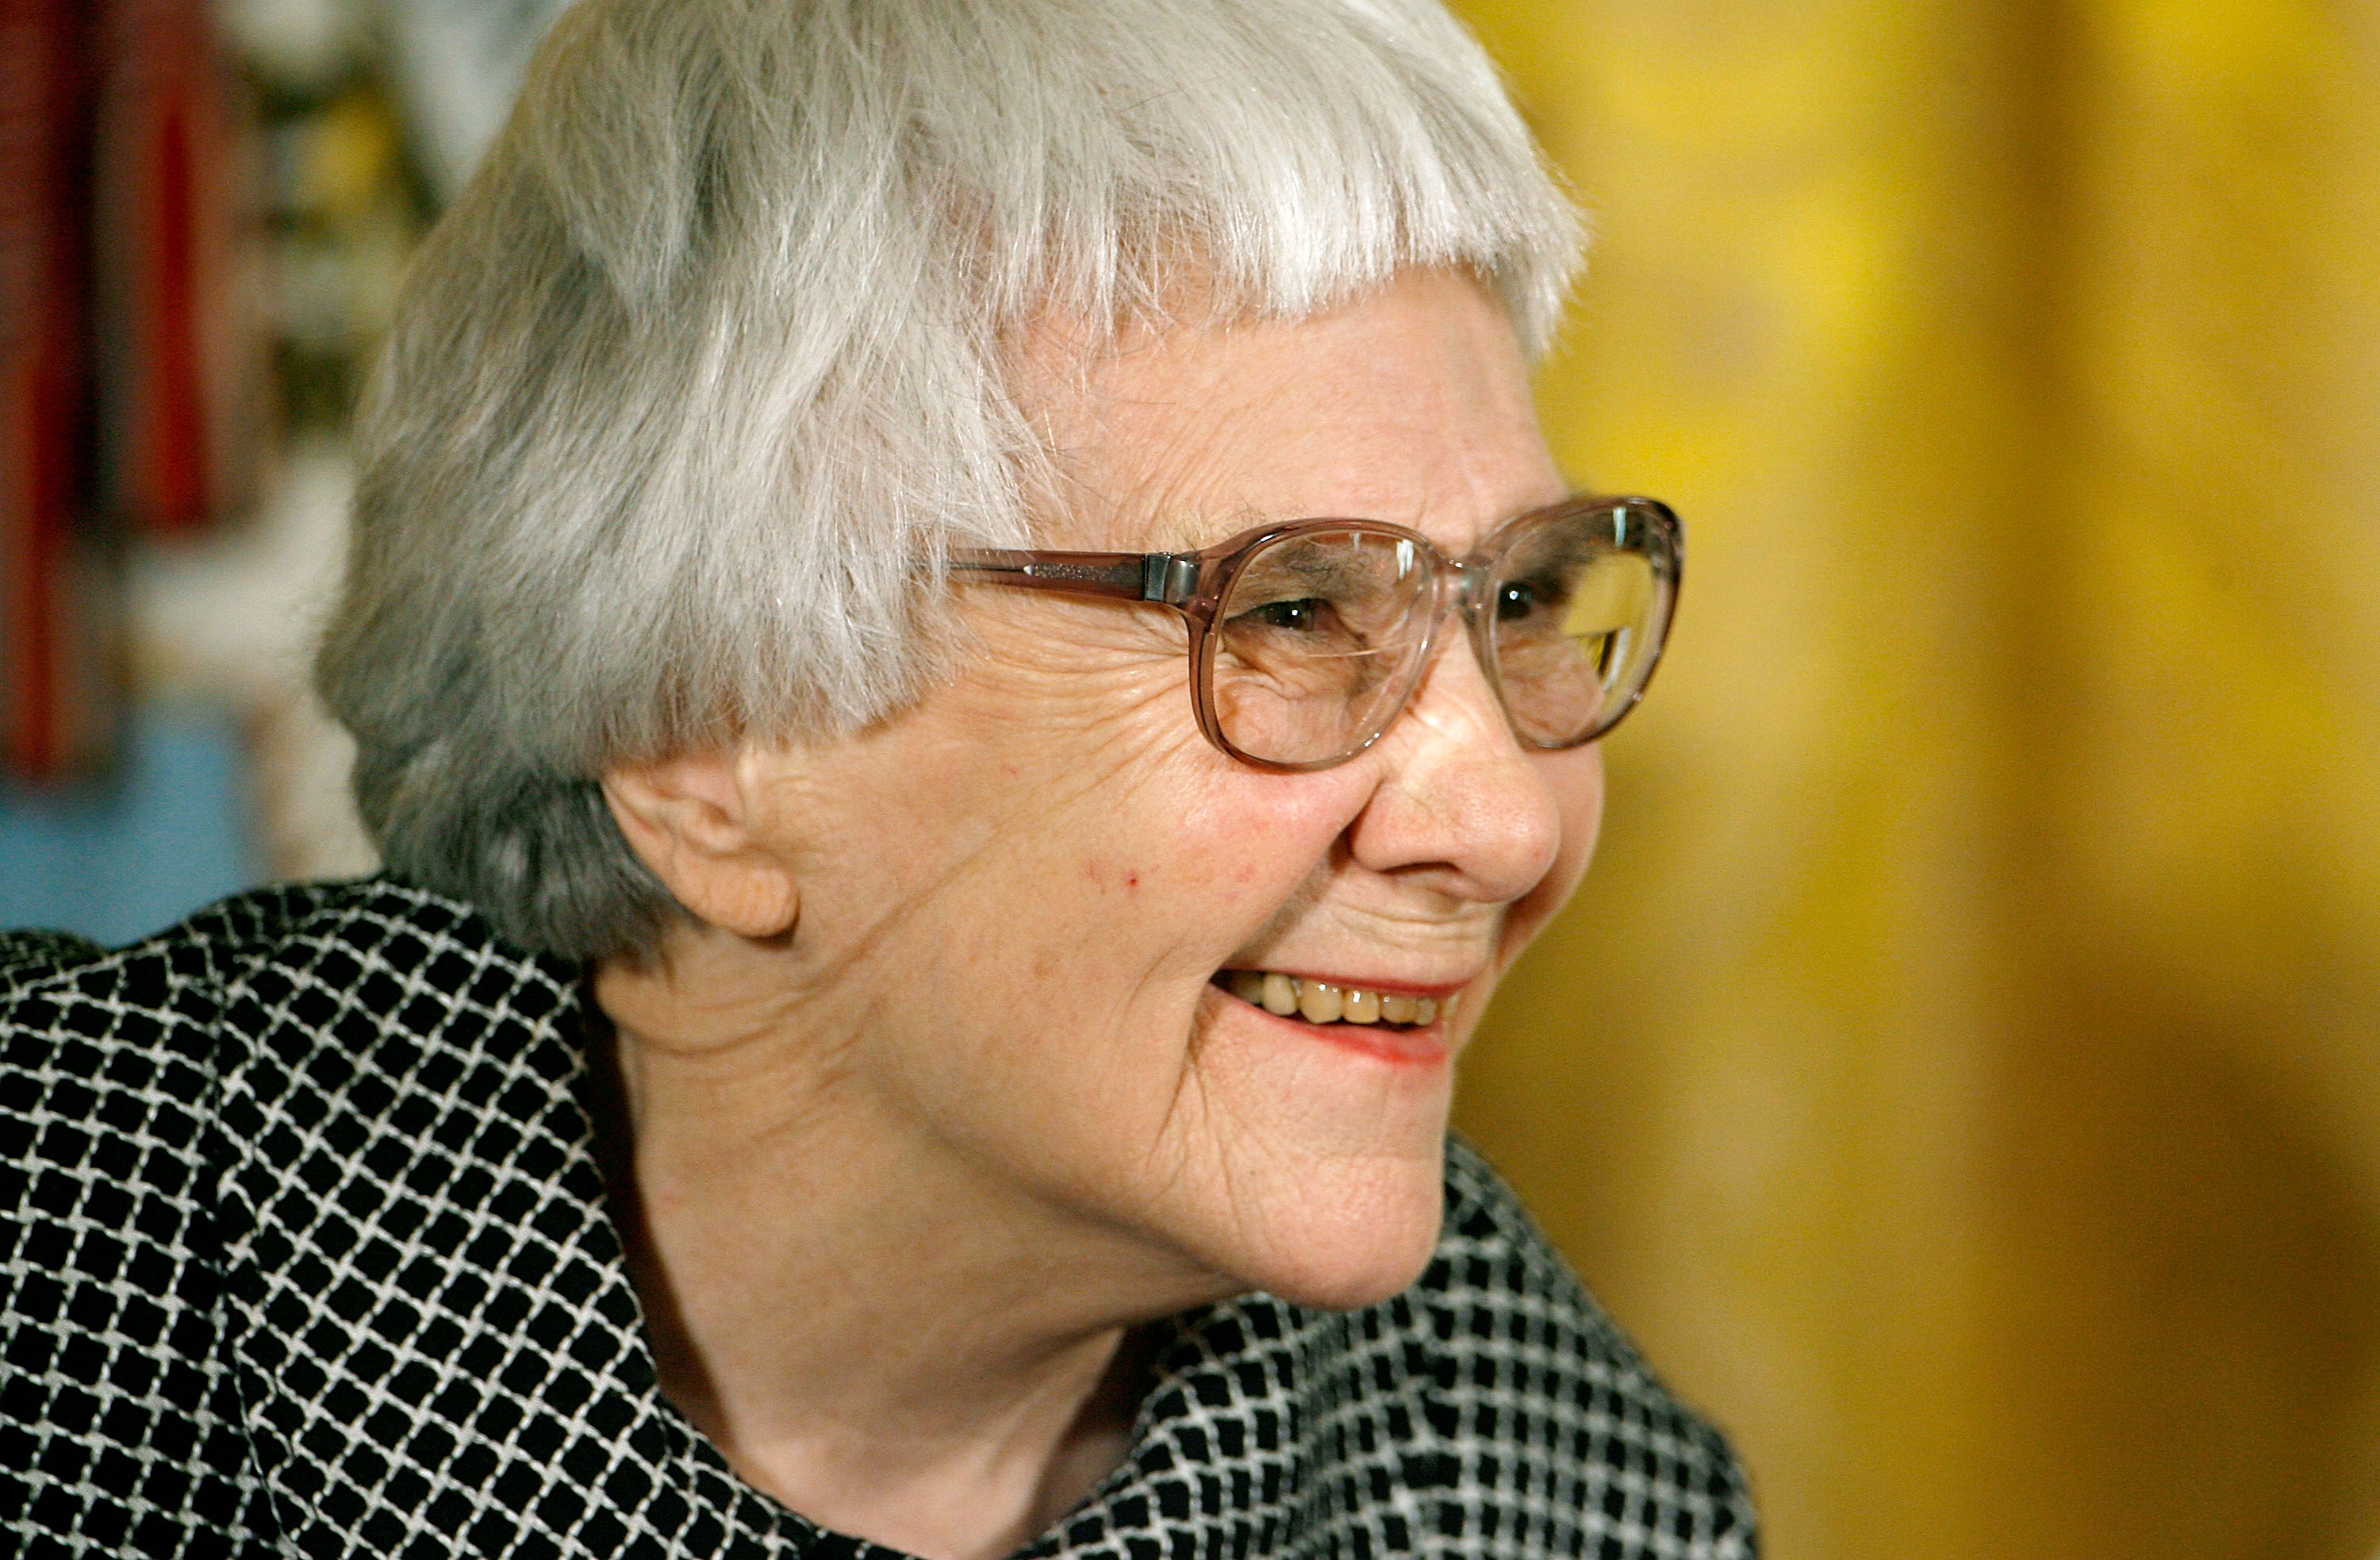 Pulitzer Prize winner and To Kill a Mockingbird author Harper Lee smiles before receiving the 2007 Presidential Medal of Freedom in the East Room of the White House, in Washington, on Nov. 5, 2007